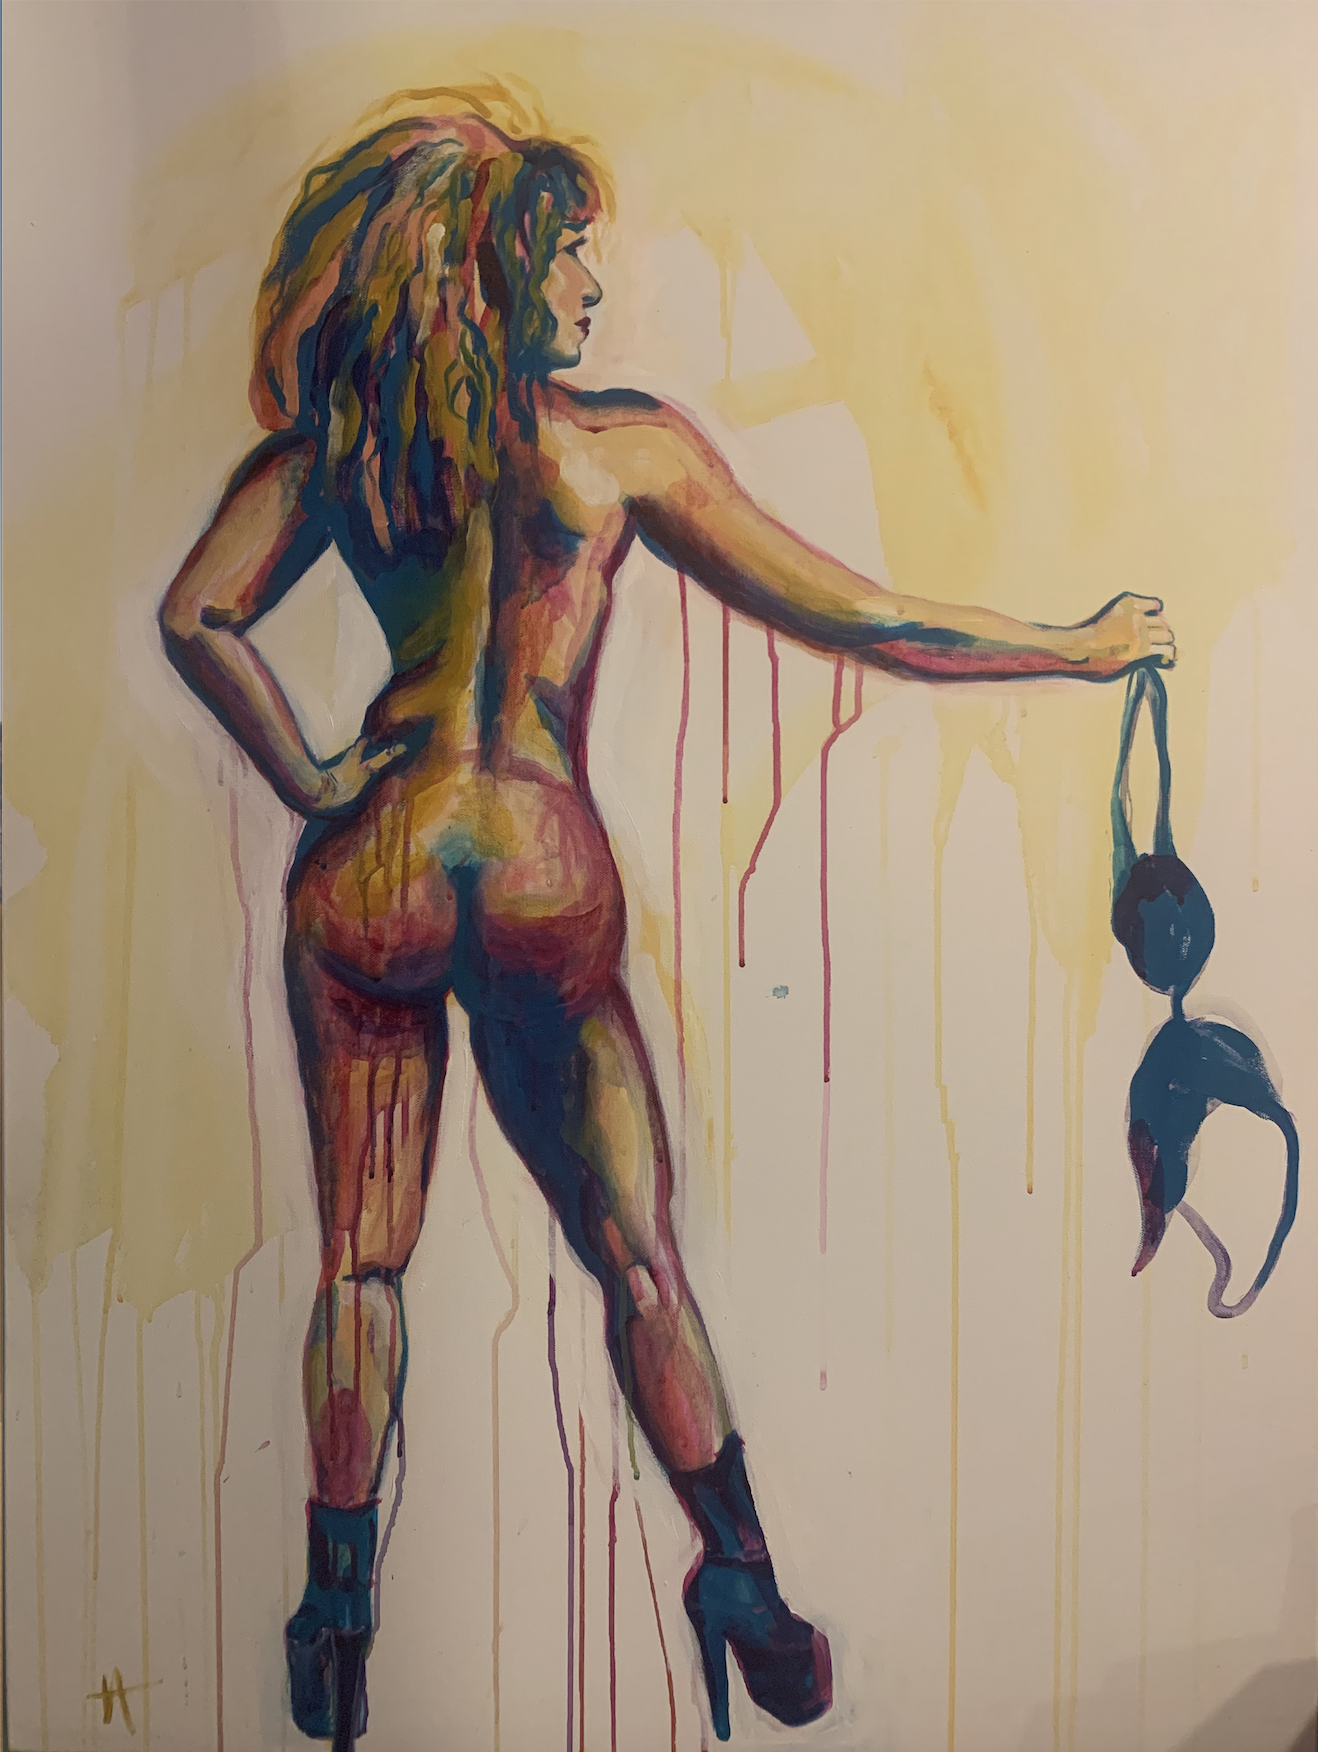 Stripped painting